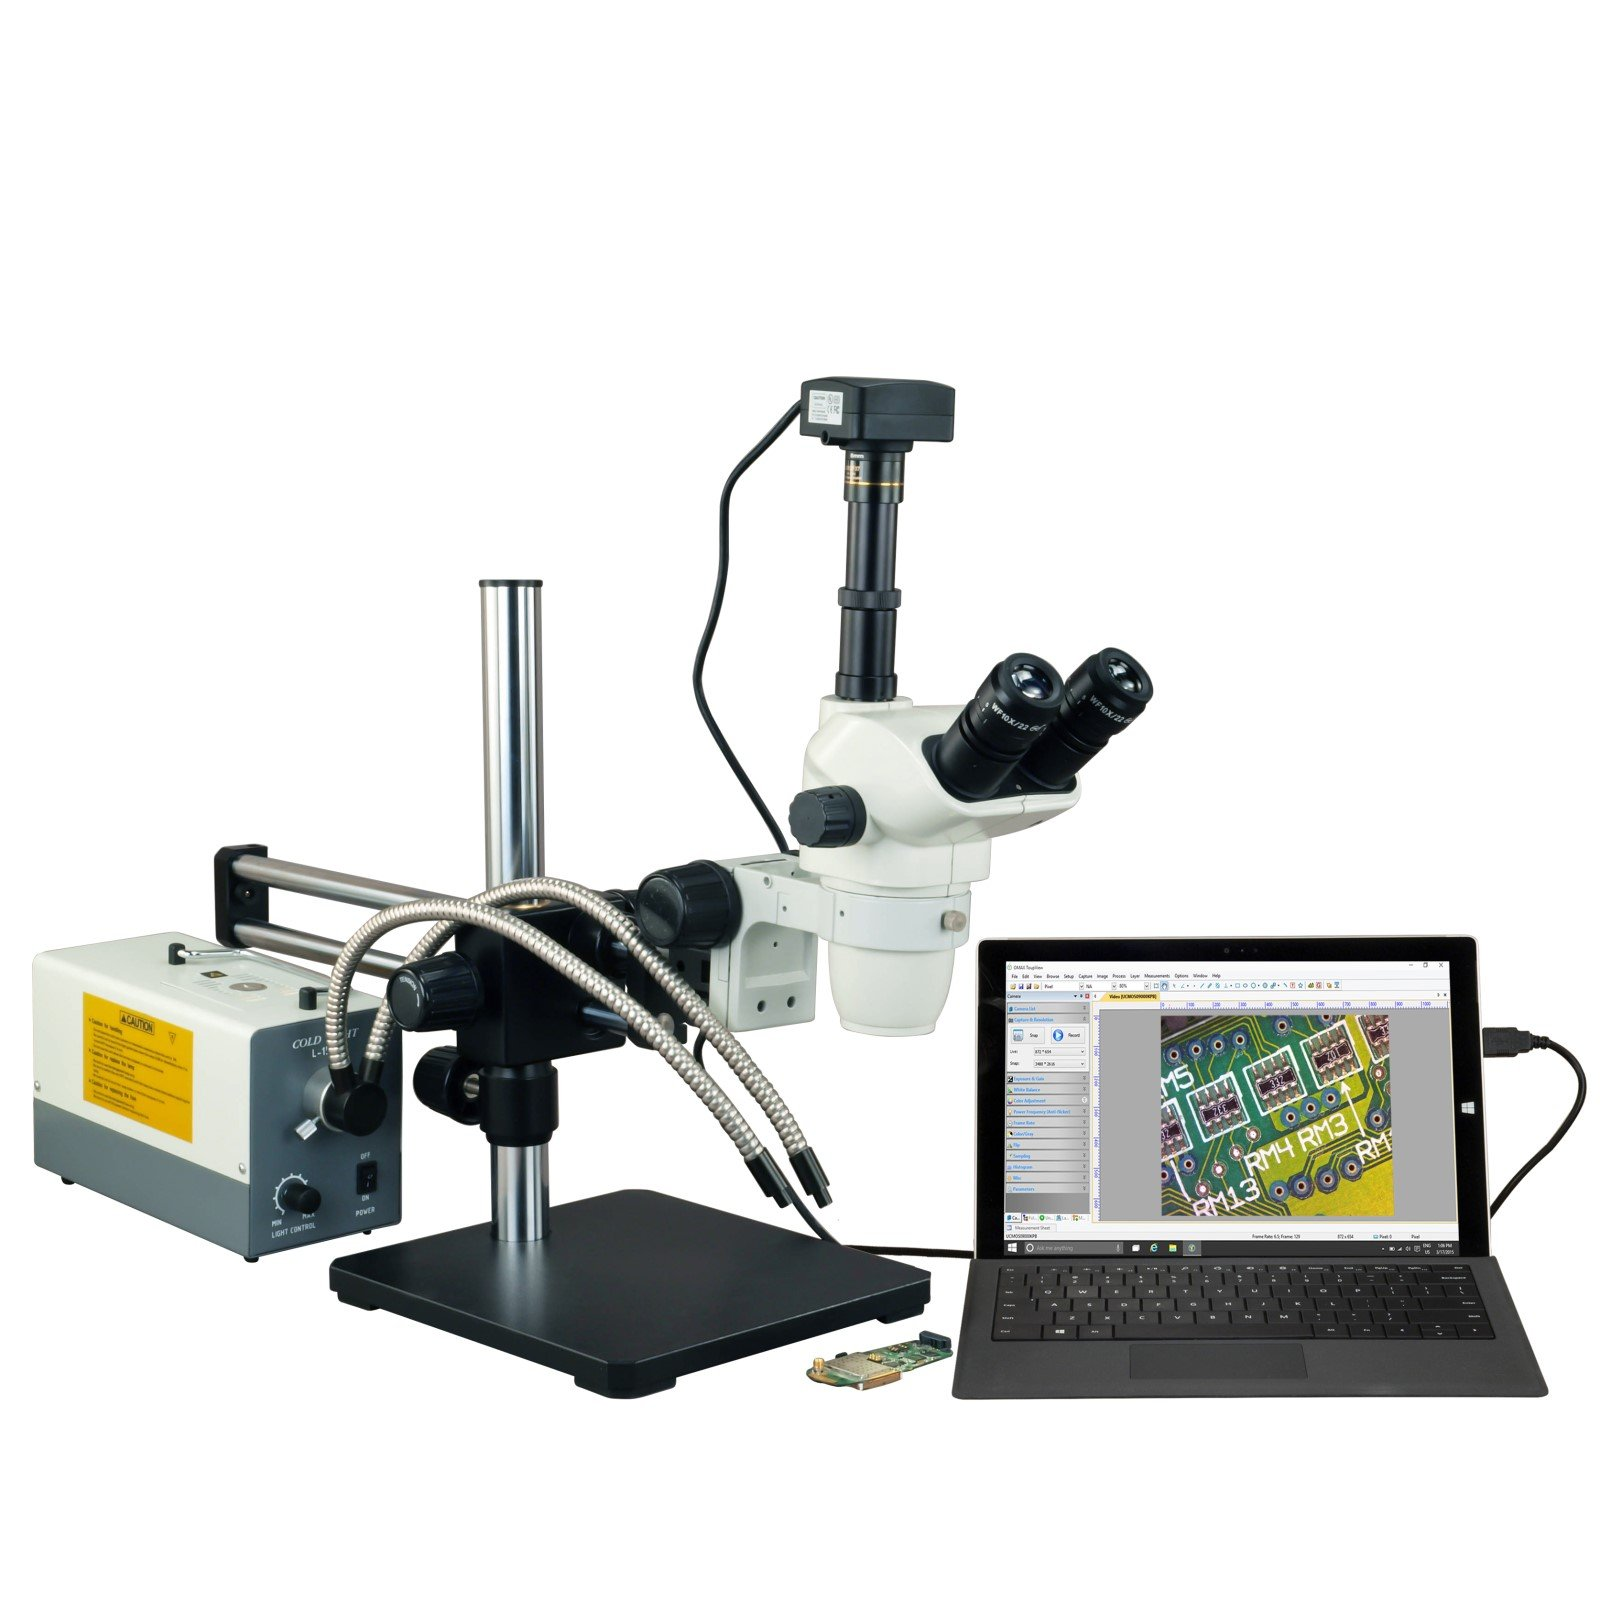 OMAX 2X-270X USB3 18MP Simal-focal Zoom Stereo Microscope on Ball-Bearing Boom+150W Dual Fiber Light by OMAX